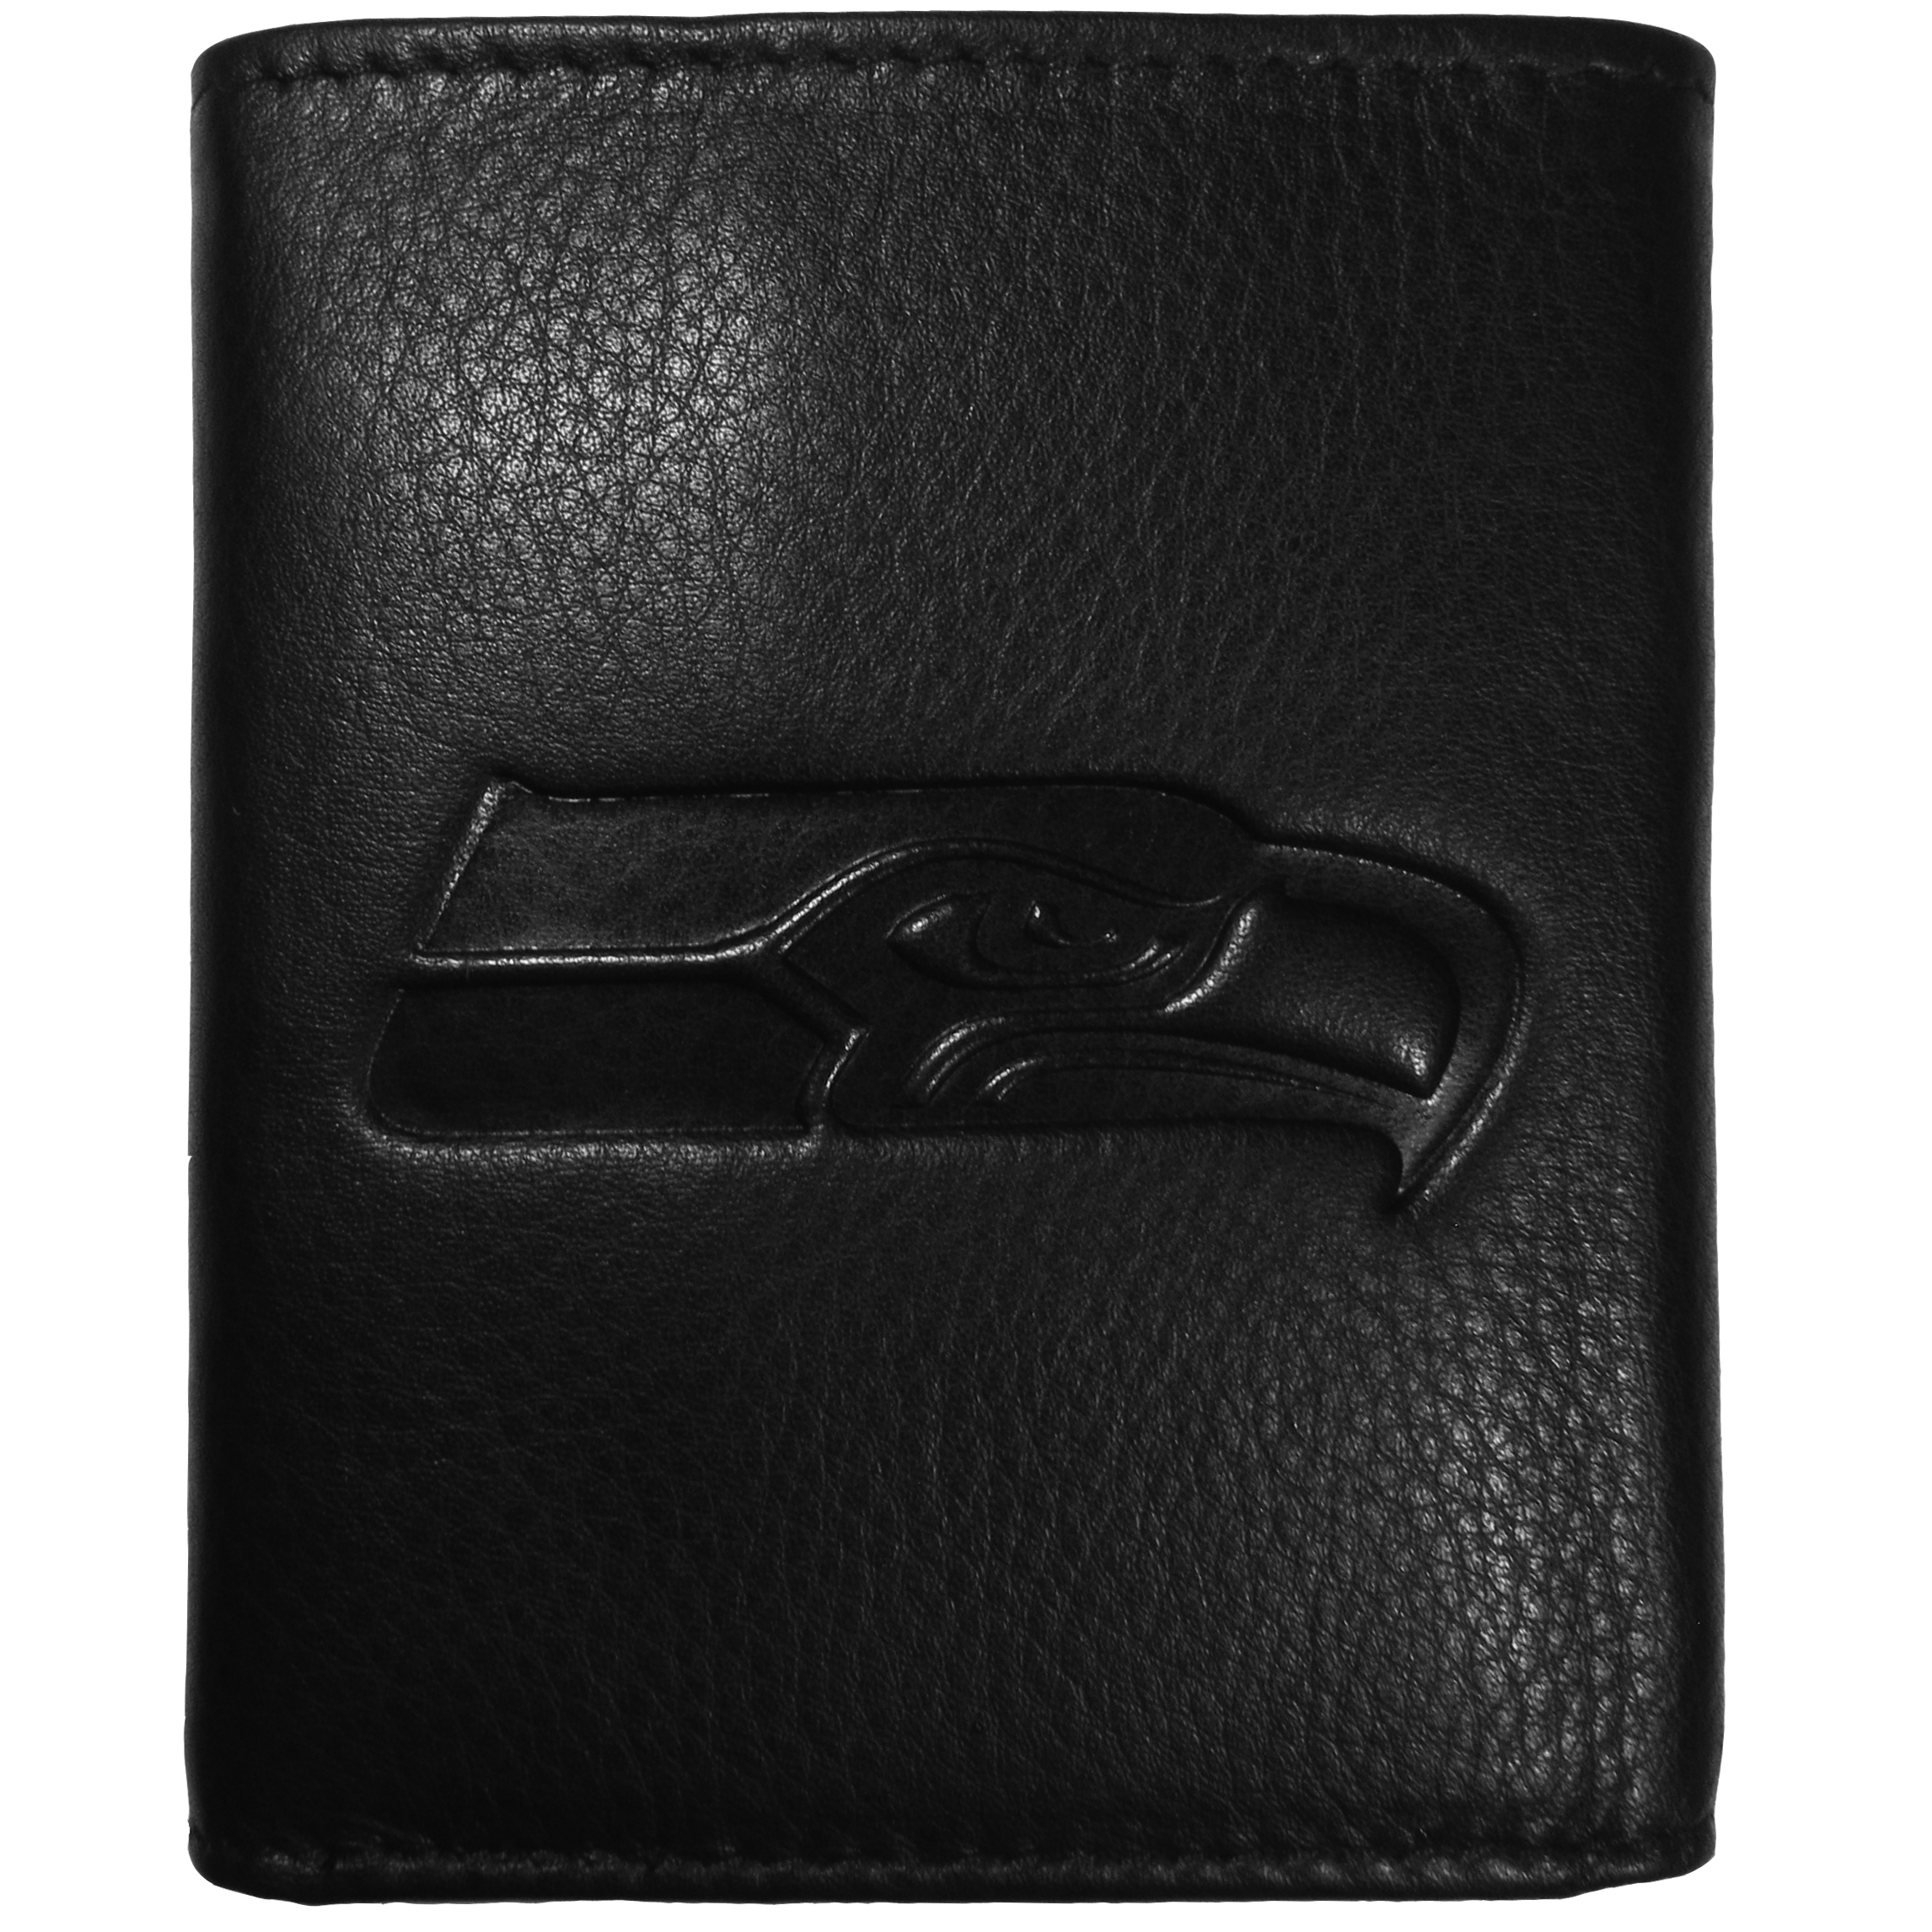 Seattle Seahawks Embossed Leather Tri-fold Wallet - This stylish leather wallet is made of high quality leather with a supple feel and classic look. The front of the tri-fold style wallet has a deeply embossed Seattle Seahawks logo. The billfold is packed with features that will allow to keep organized, lots of credit card slots, windowed ID slot, large pockets for bills and a removable sleeve with extra slots for even more storage. This is a must-have men's fashion accessory that would make any fan very proud to own.